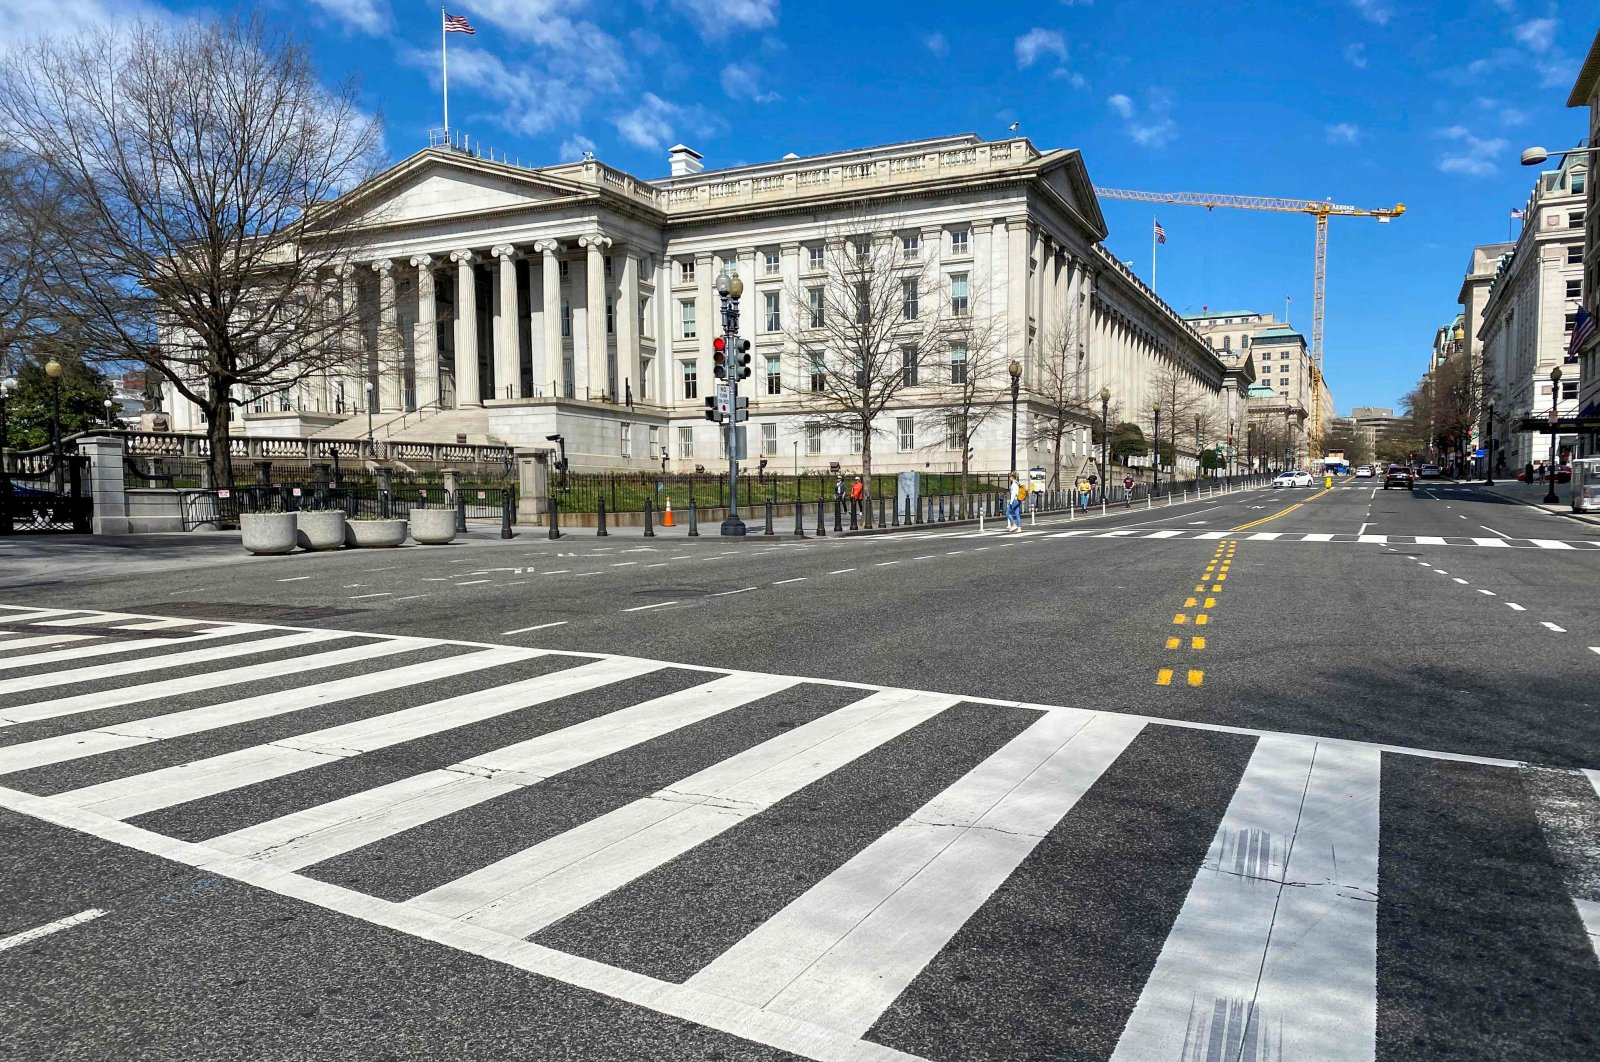 The U.S. Treasury Department building is seen next to an almost empty 15th Street at noon in Washington, March 13, 2020. (AFP Photo)